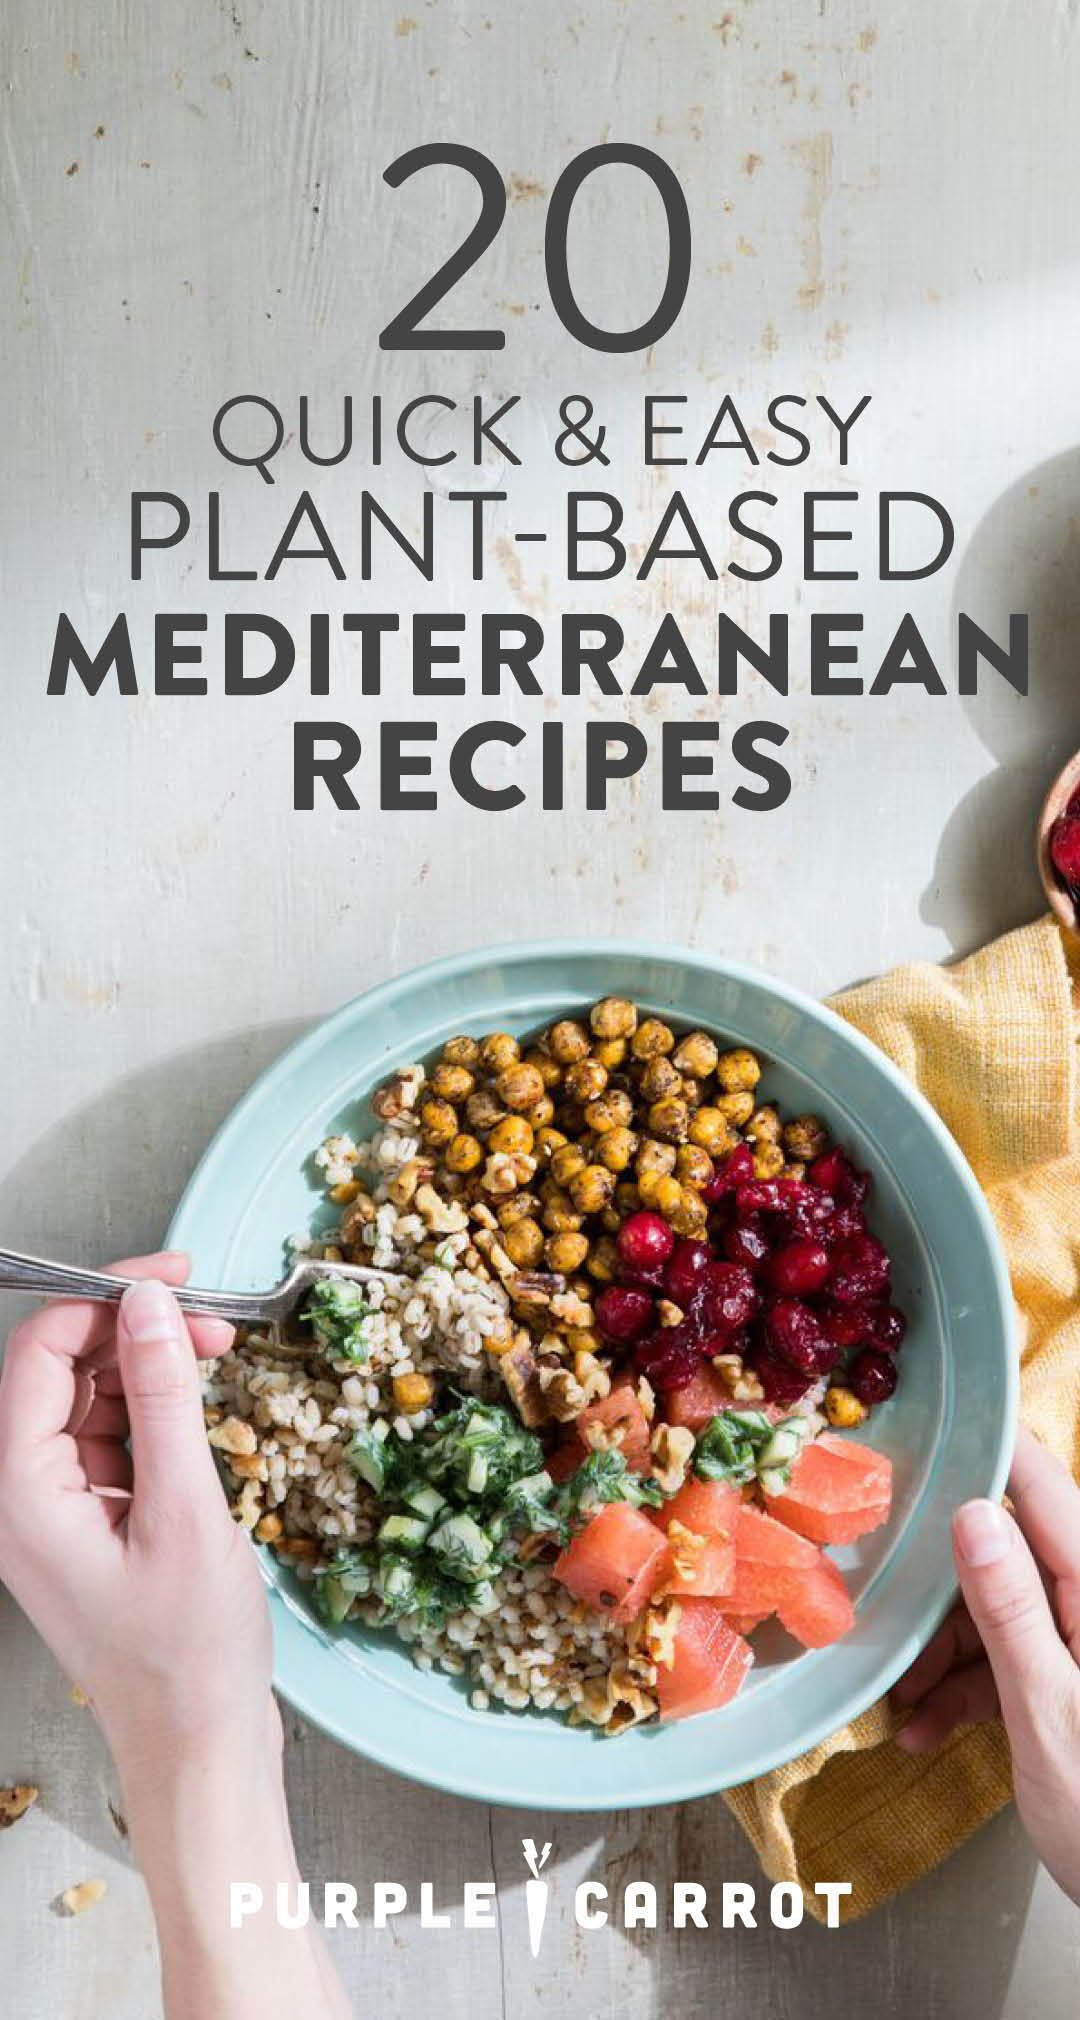 A Mediterannean Diet Is Known For Its Heart Healthy Benefits We Gathered Our Fa Mediterranean Recipes Healthy Mediterranean Recipes Mediterranean Diet Recipes